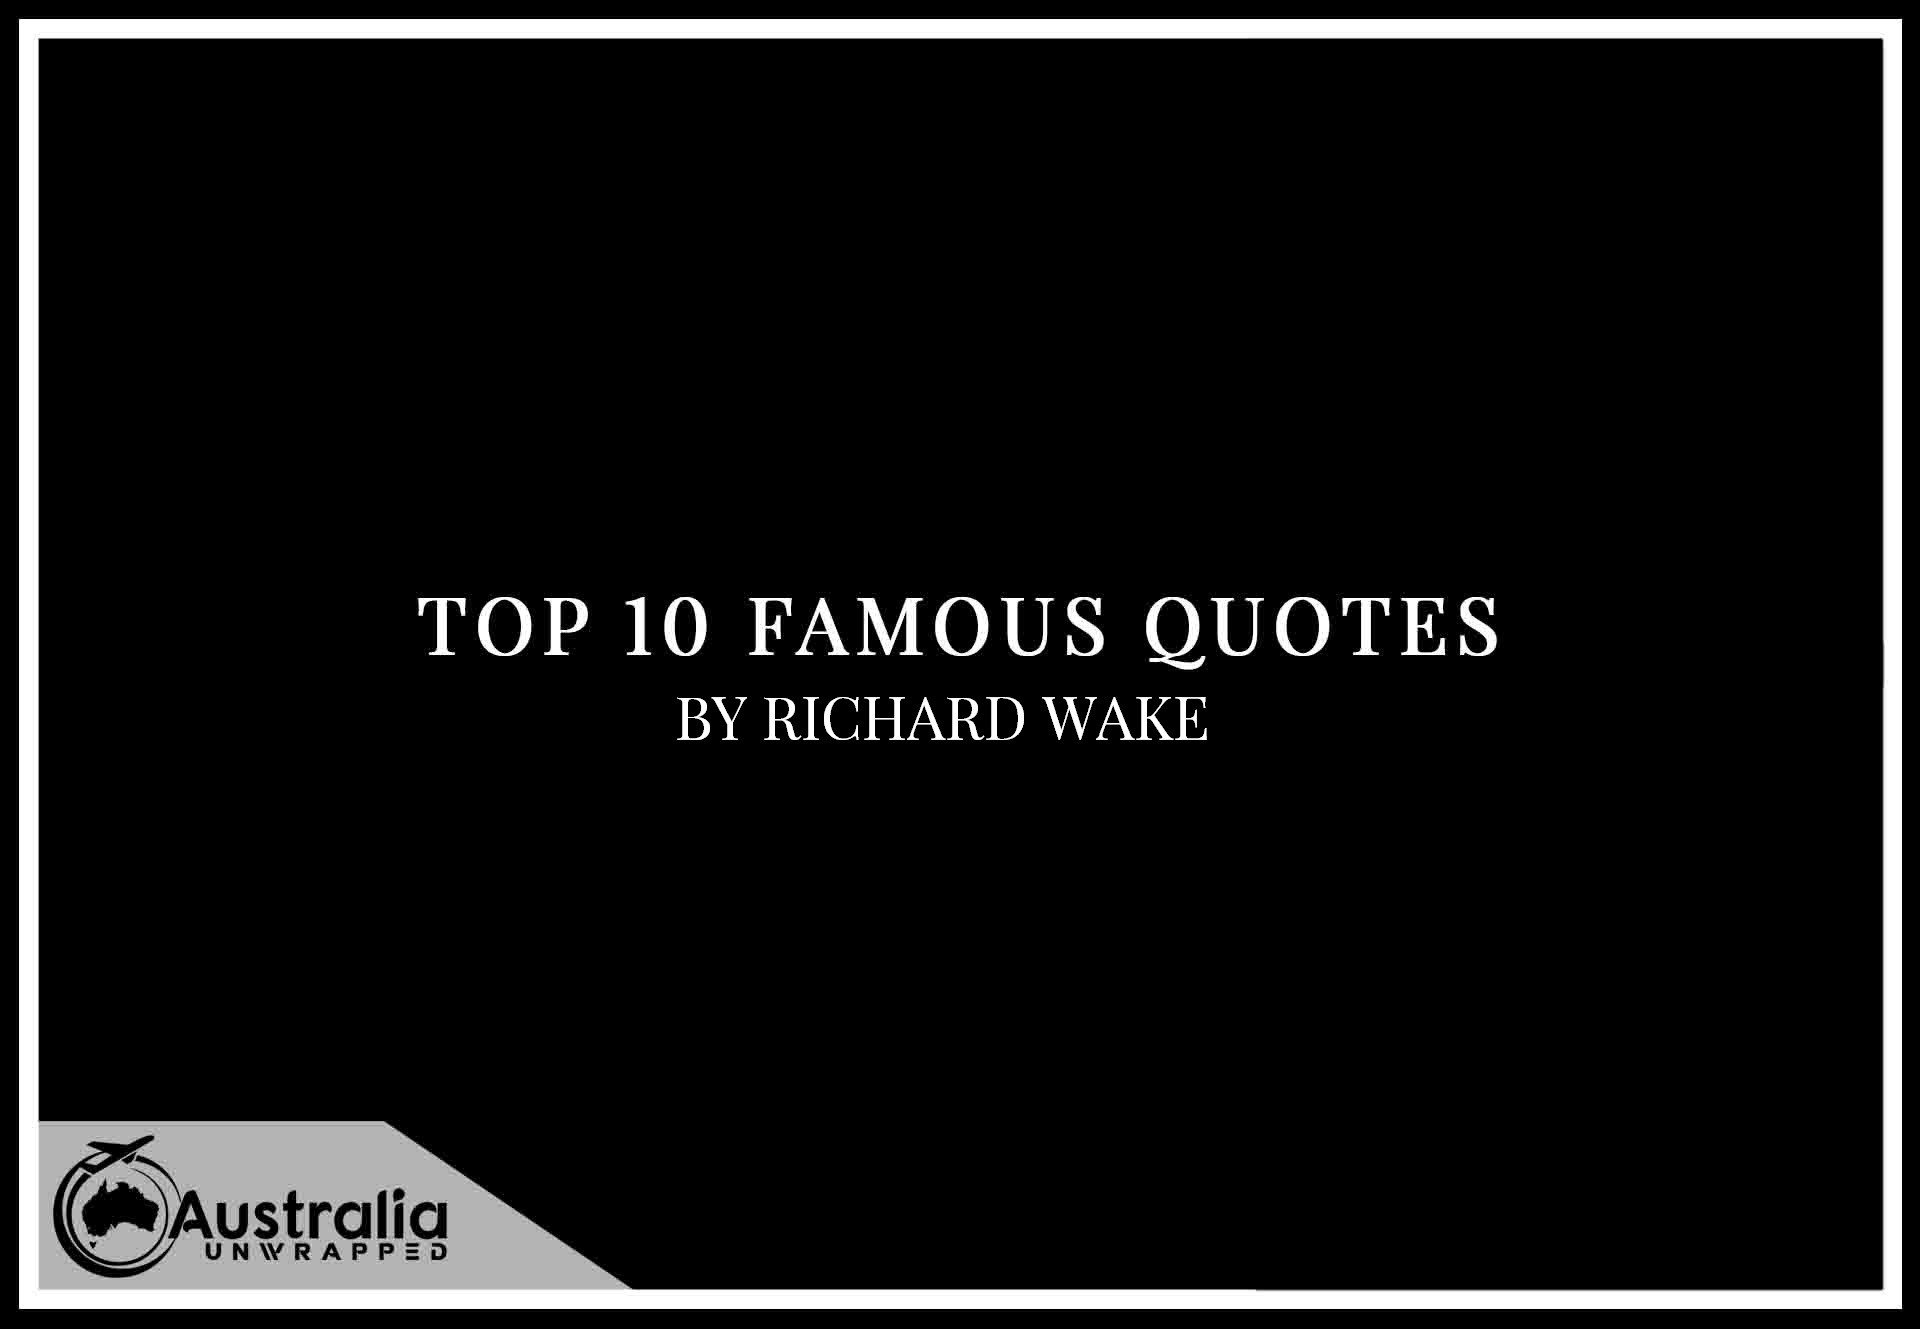 Top 10 Famous Quotes by Author Richard Wake